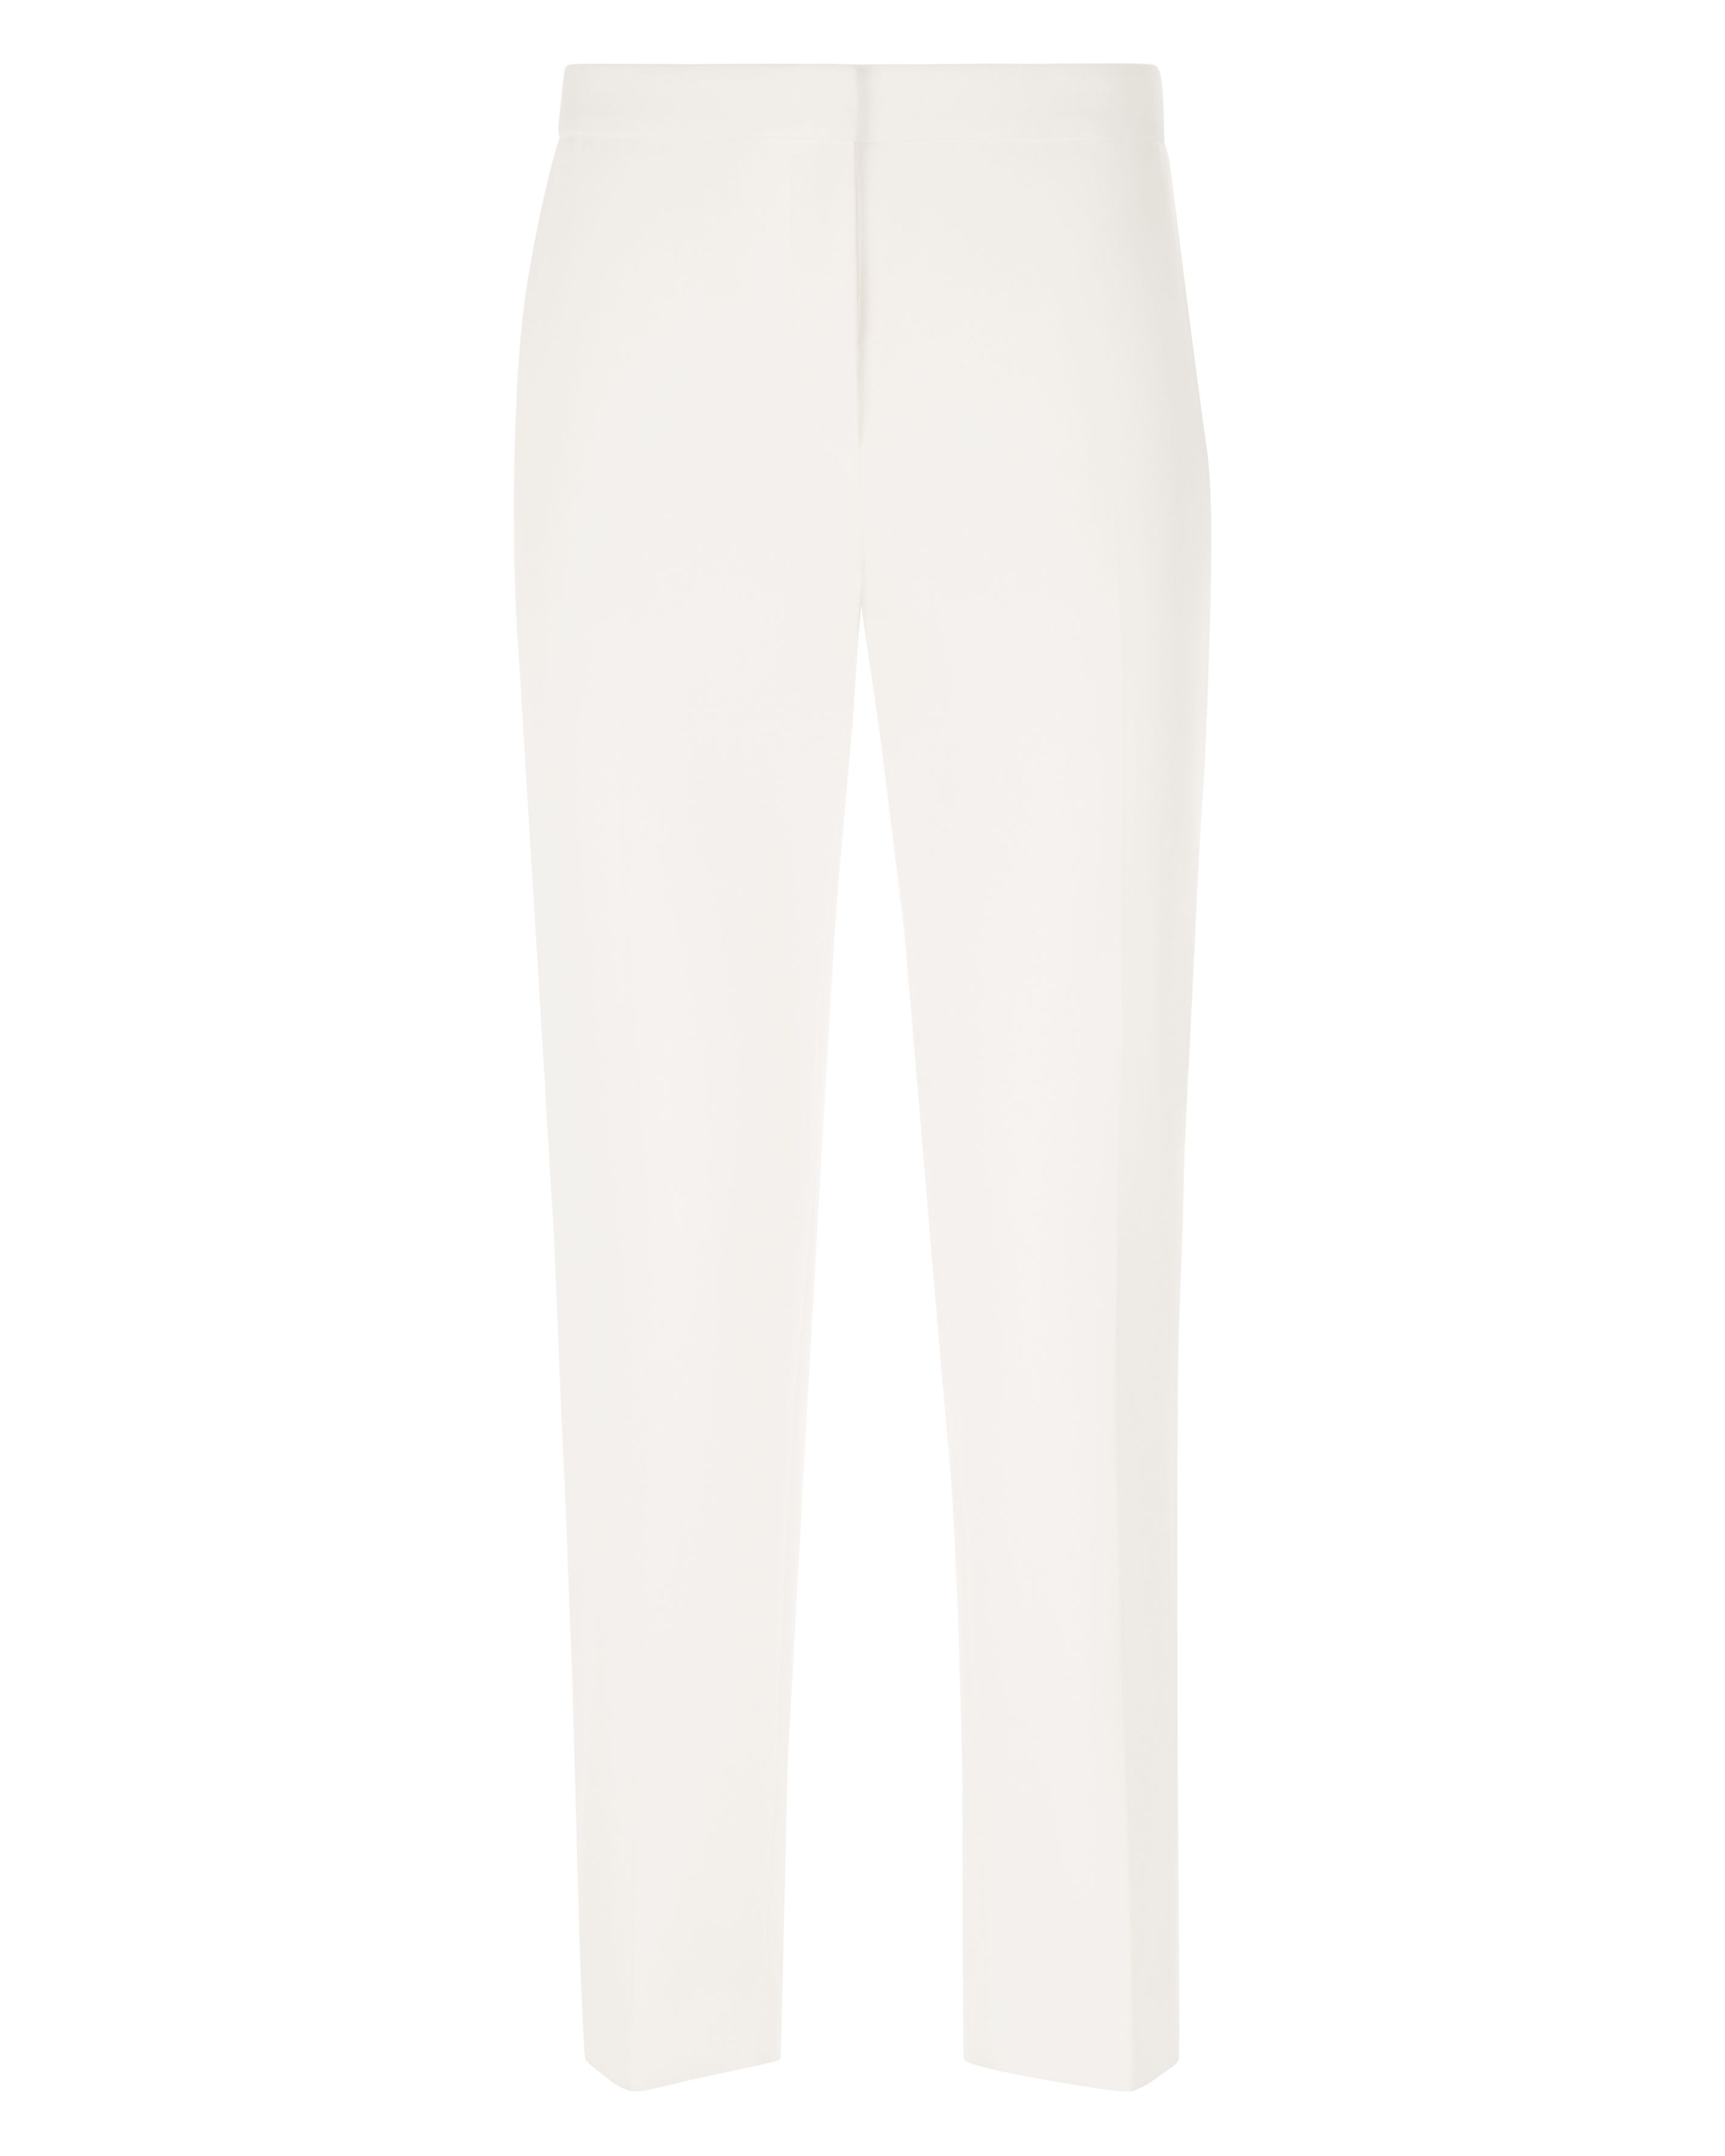 Jaeger CROPPED STRETCH TROUSER, White